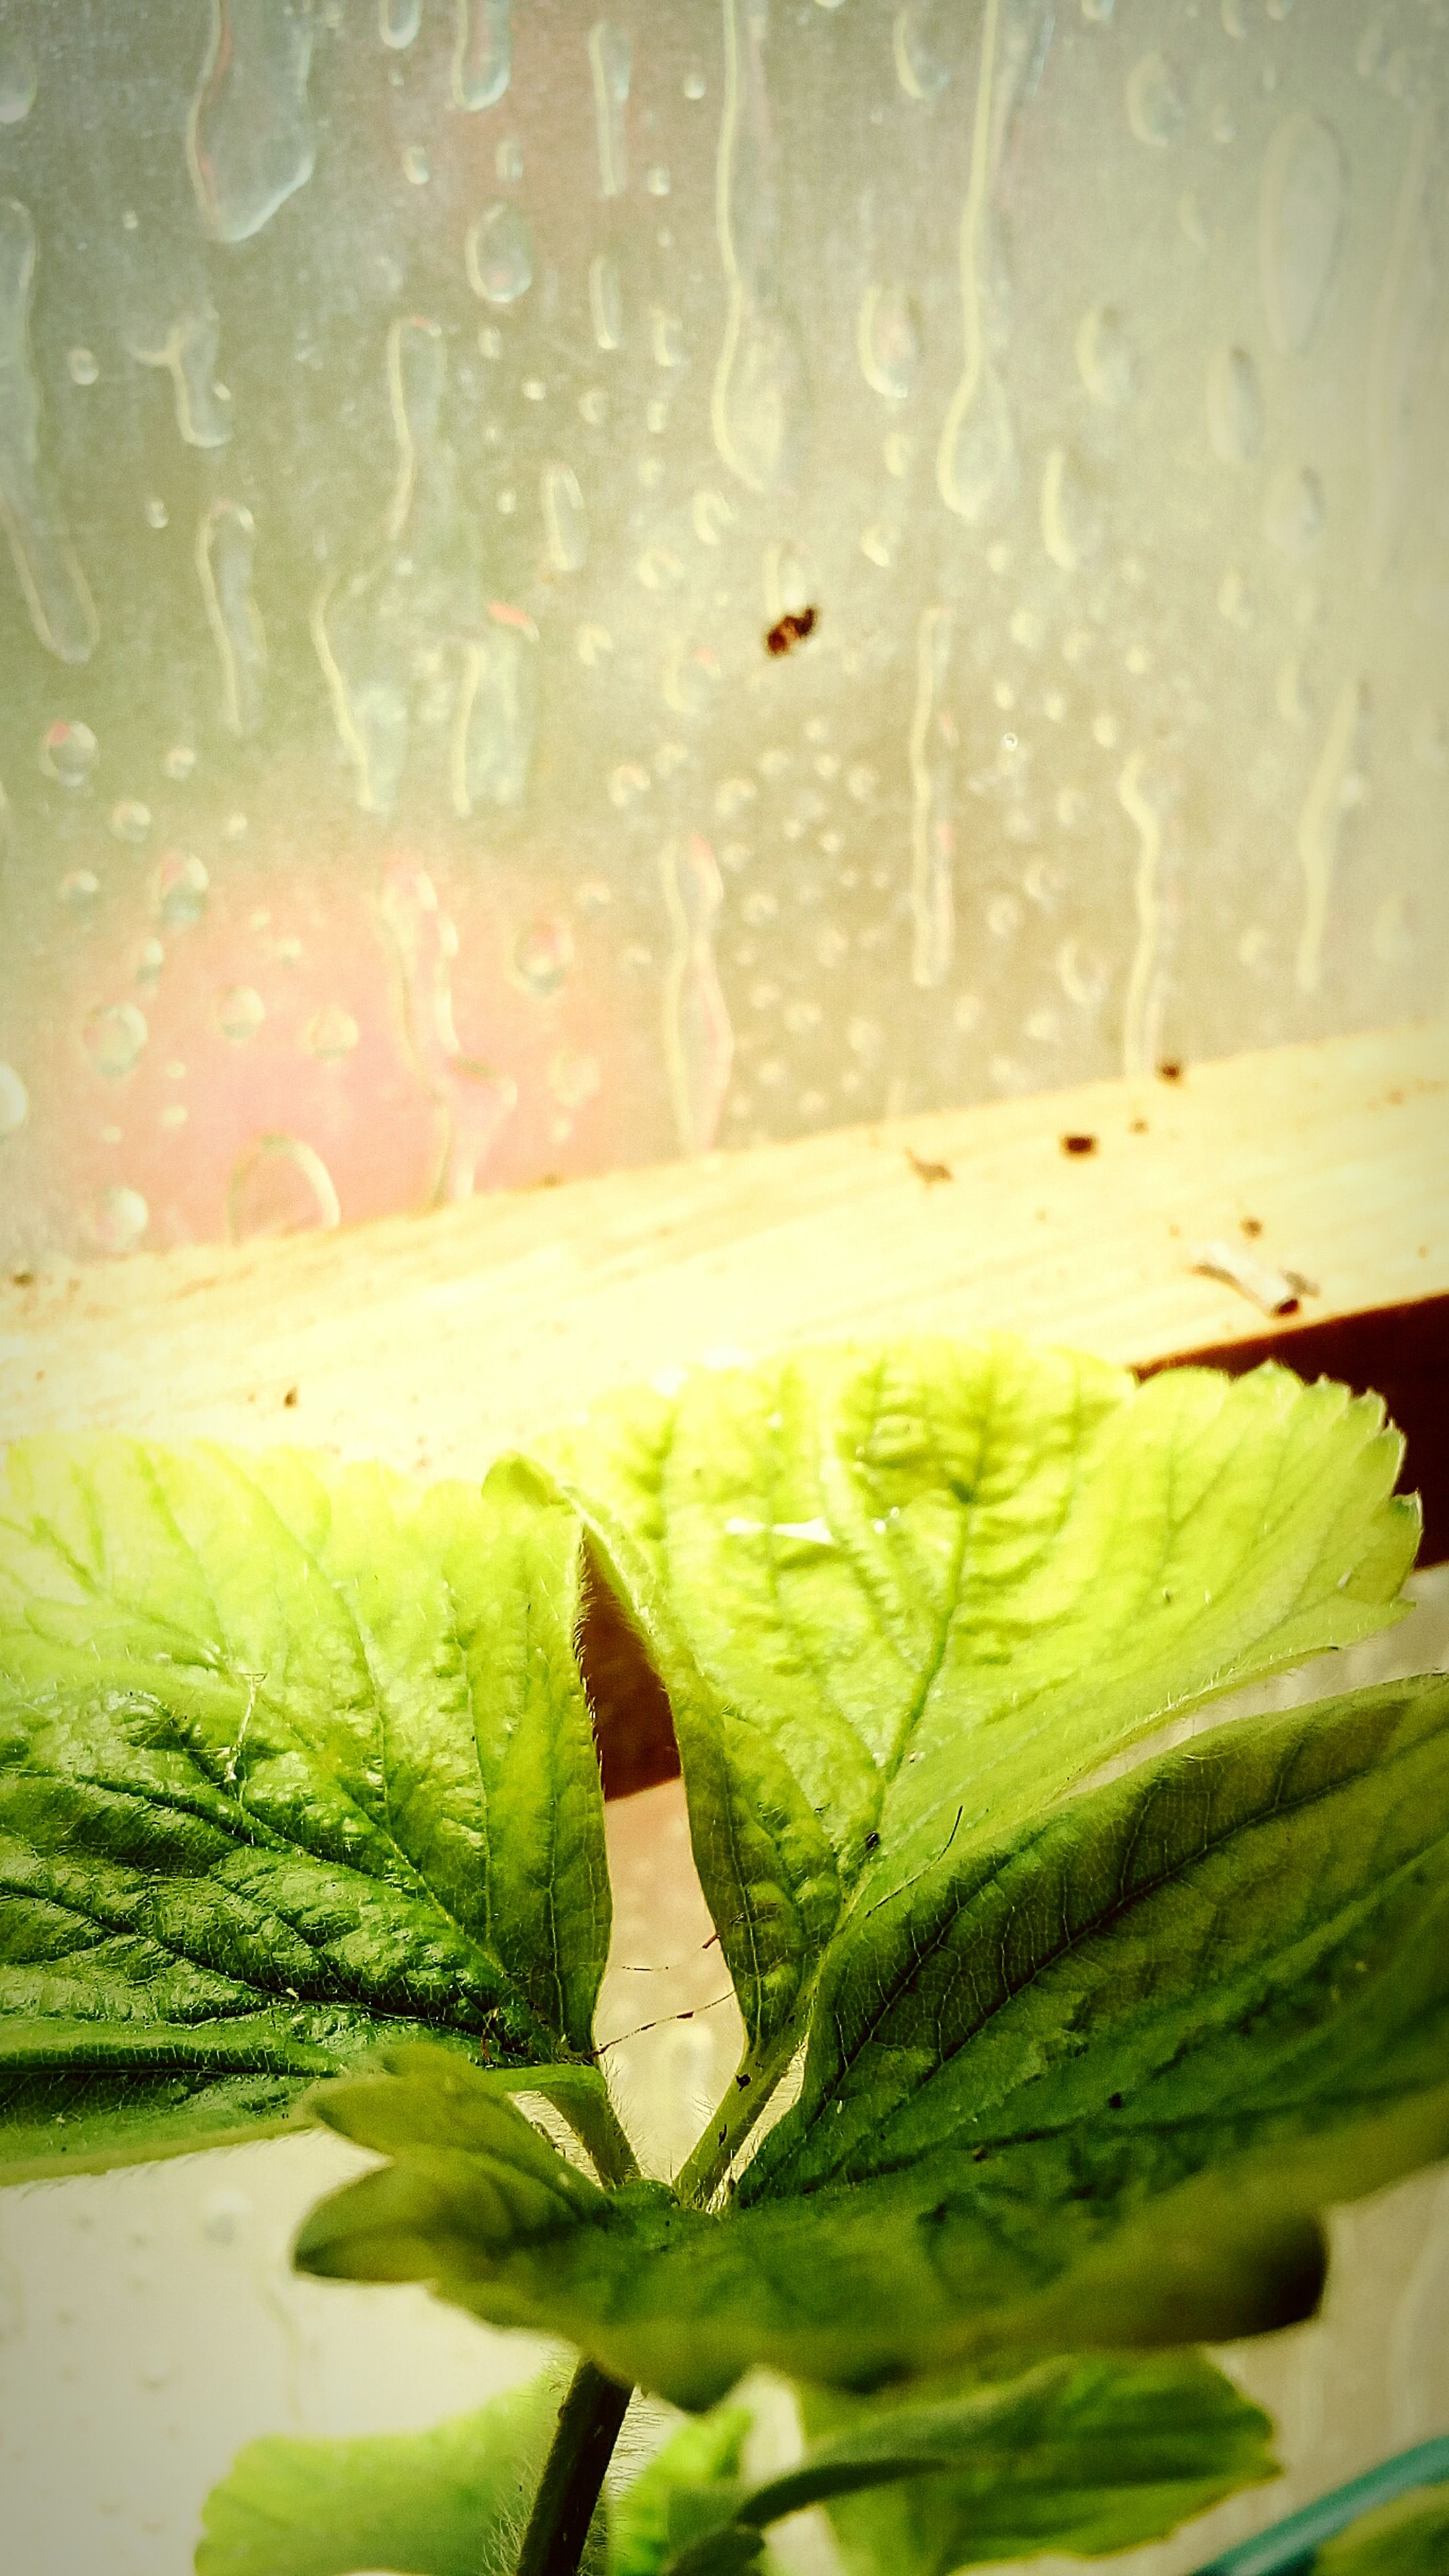 green color, leaf, drop, wet, water, freshness, plant, nature, no people, window, close-up, indoors, growth, raindrop, animal themes, day, beauty in nature, fragility